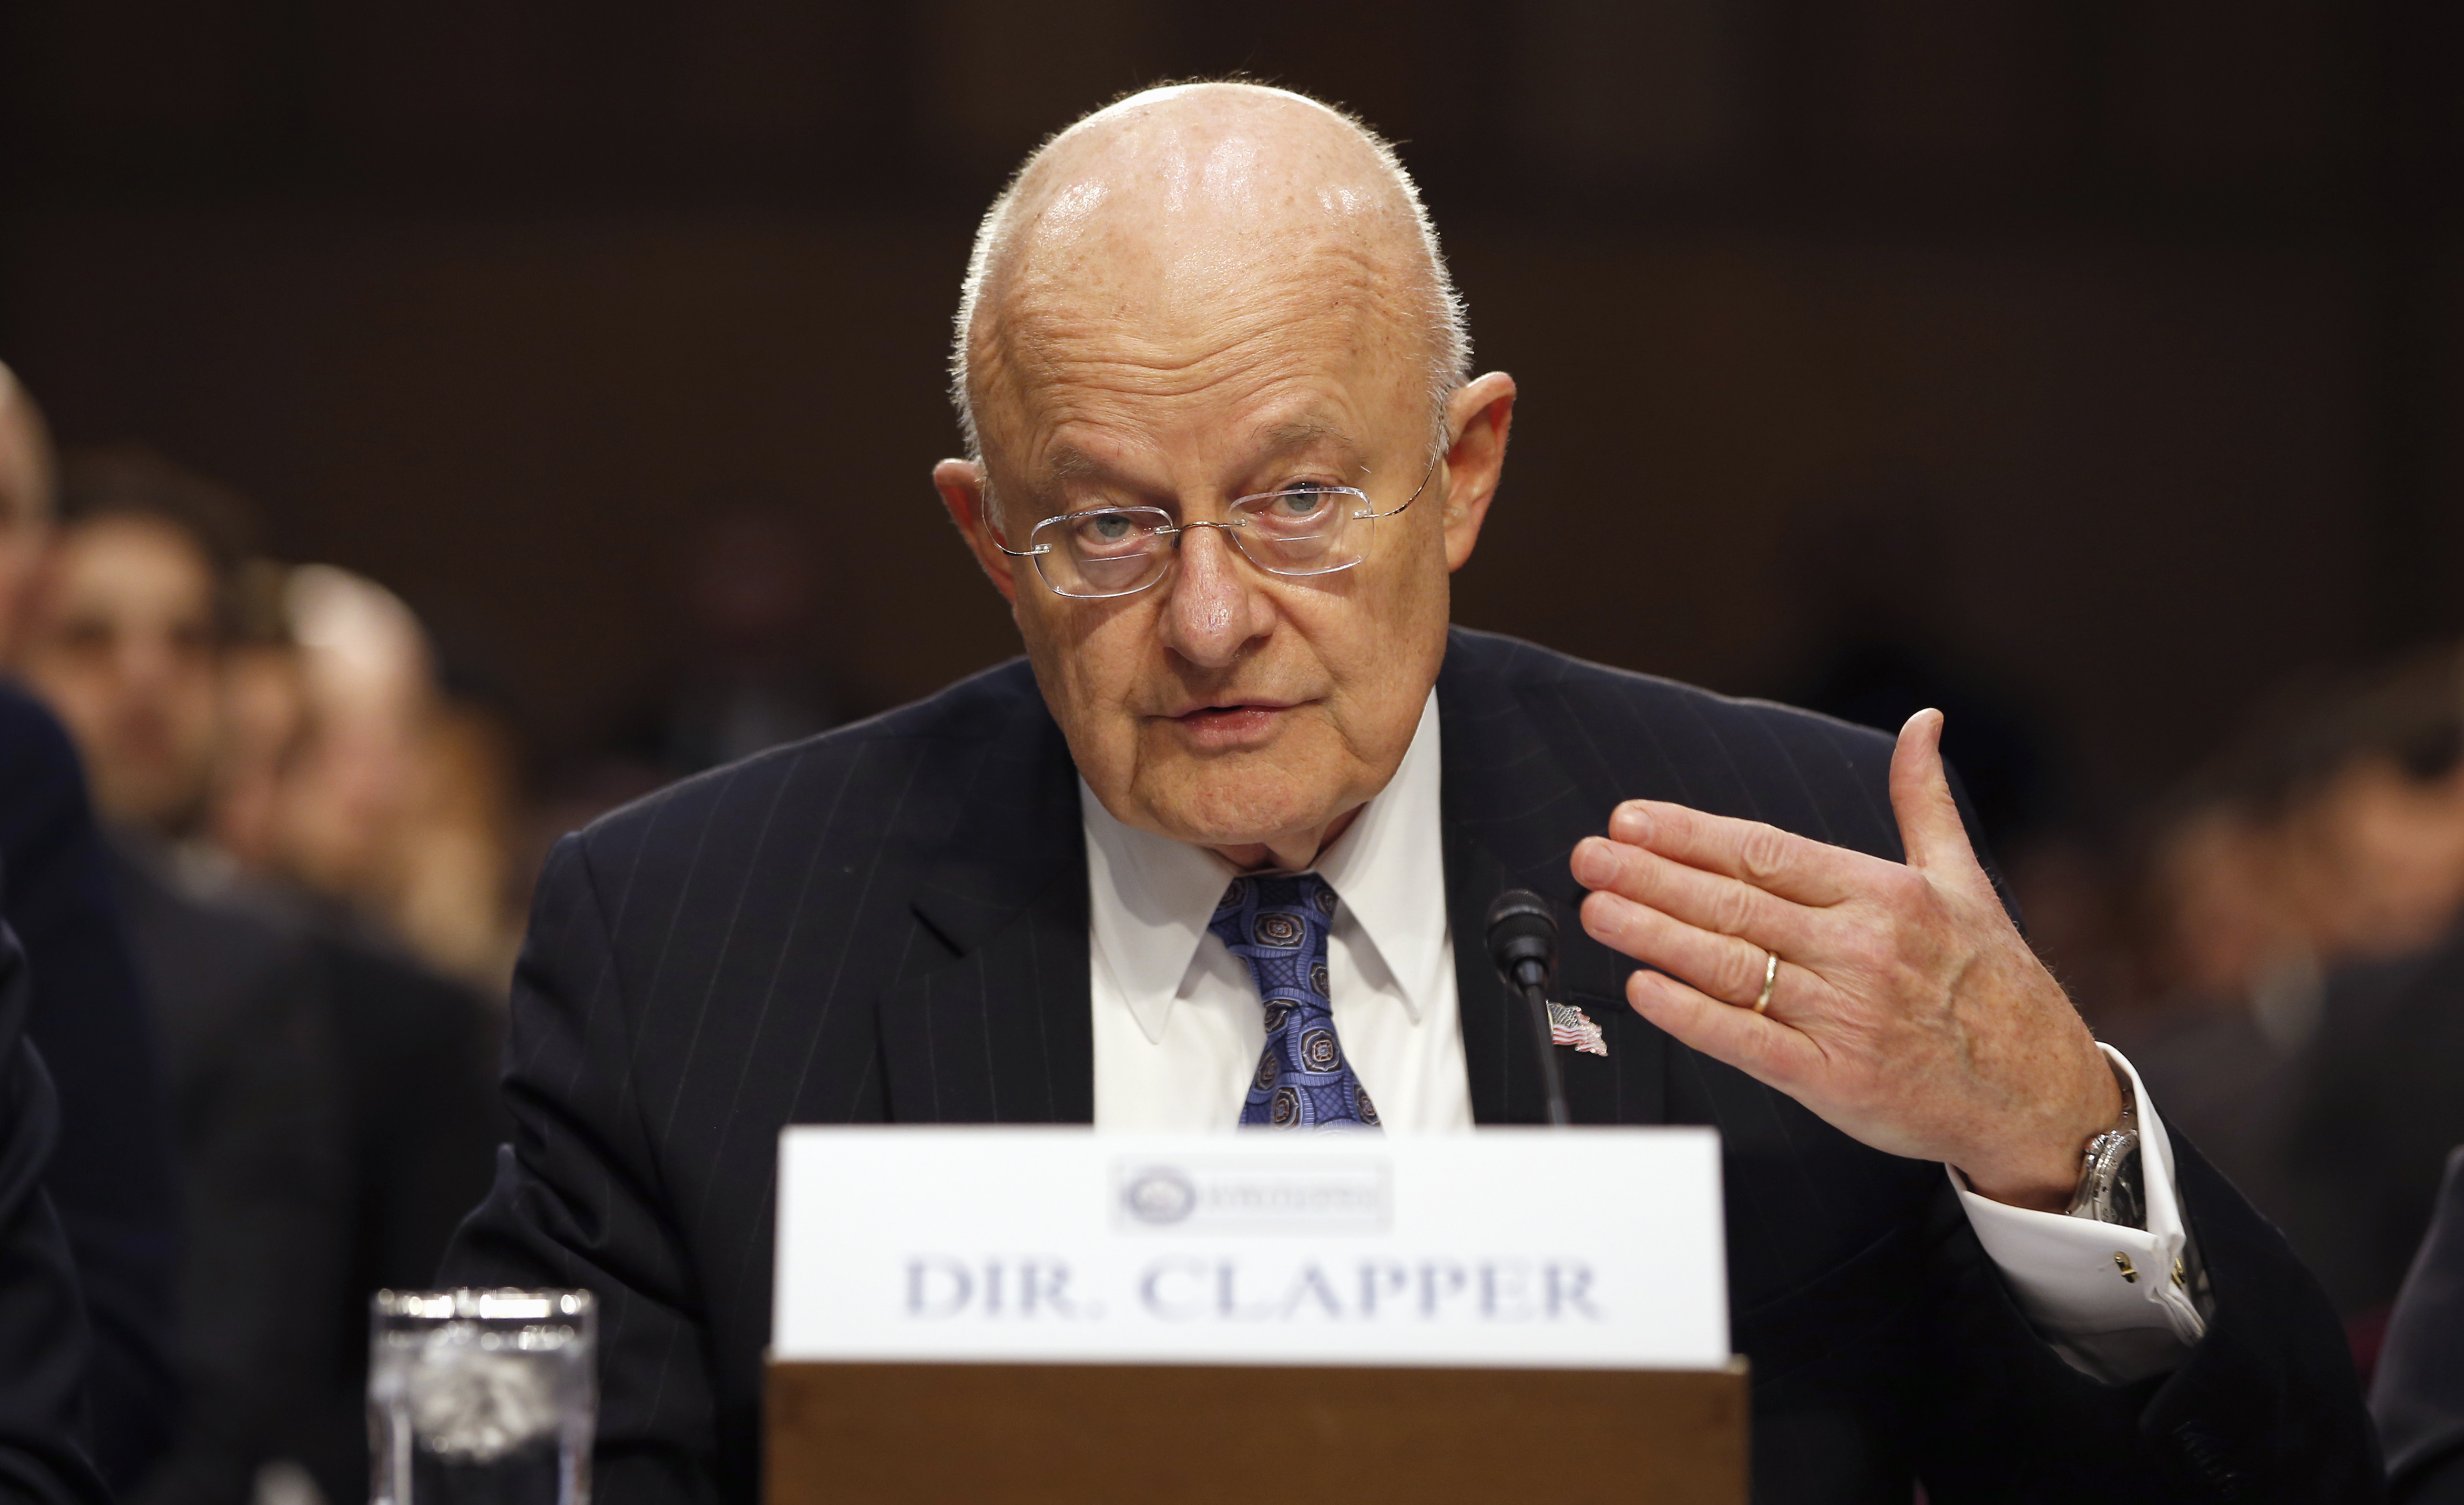 Director of the National Intelligence James Clapper testifies on Capitol Hill in Washington, Feb. 9, 2016.